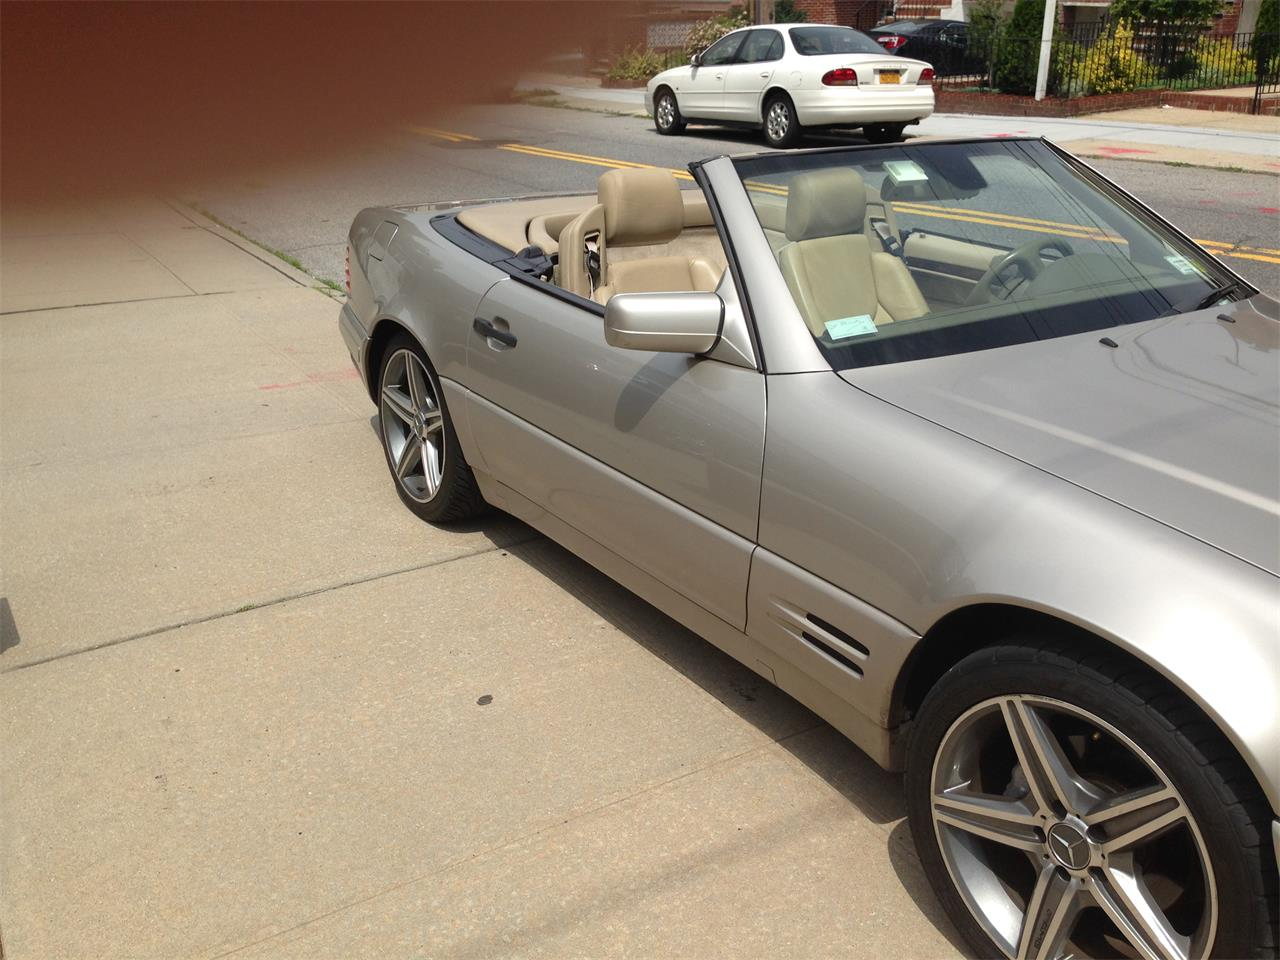 Large Picture of '98 Mercedes-Benz SL500 located in New York - $7,900.00 - EYIB